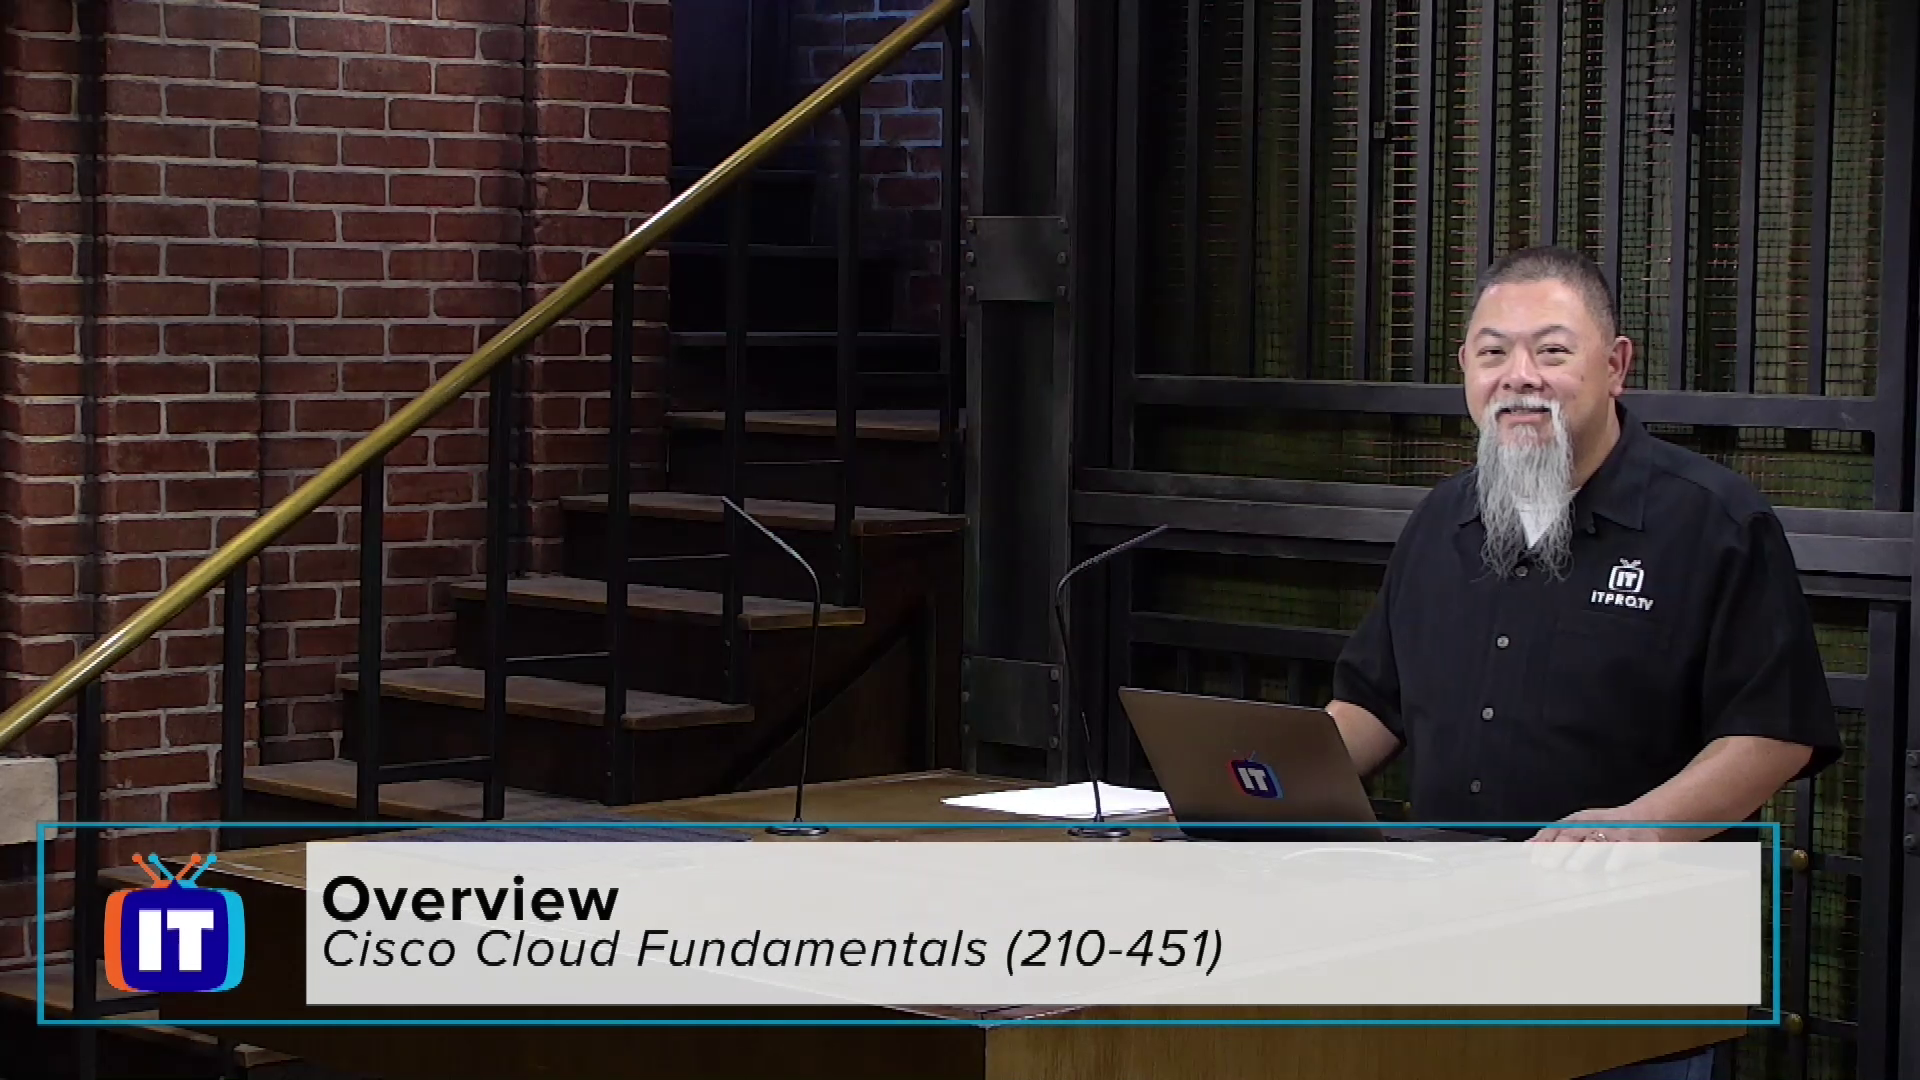 Cisco Cloud Fundamentals (210-451)